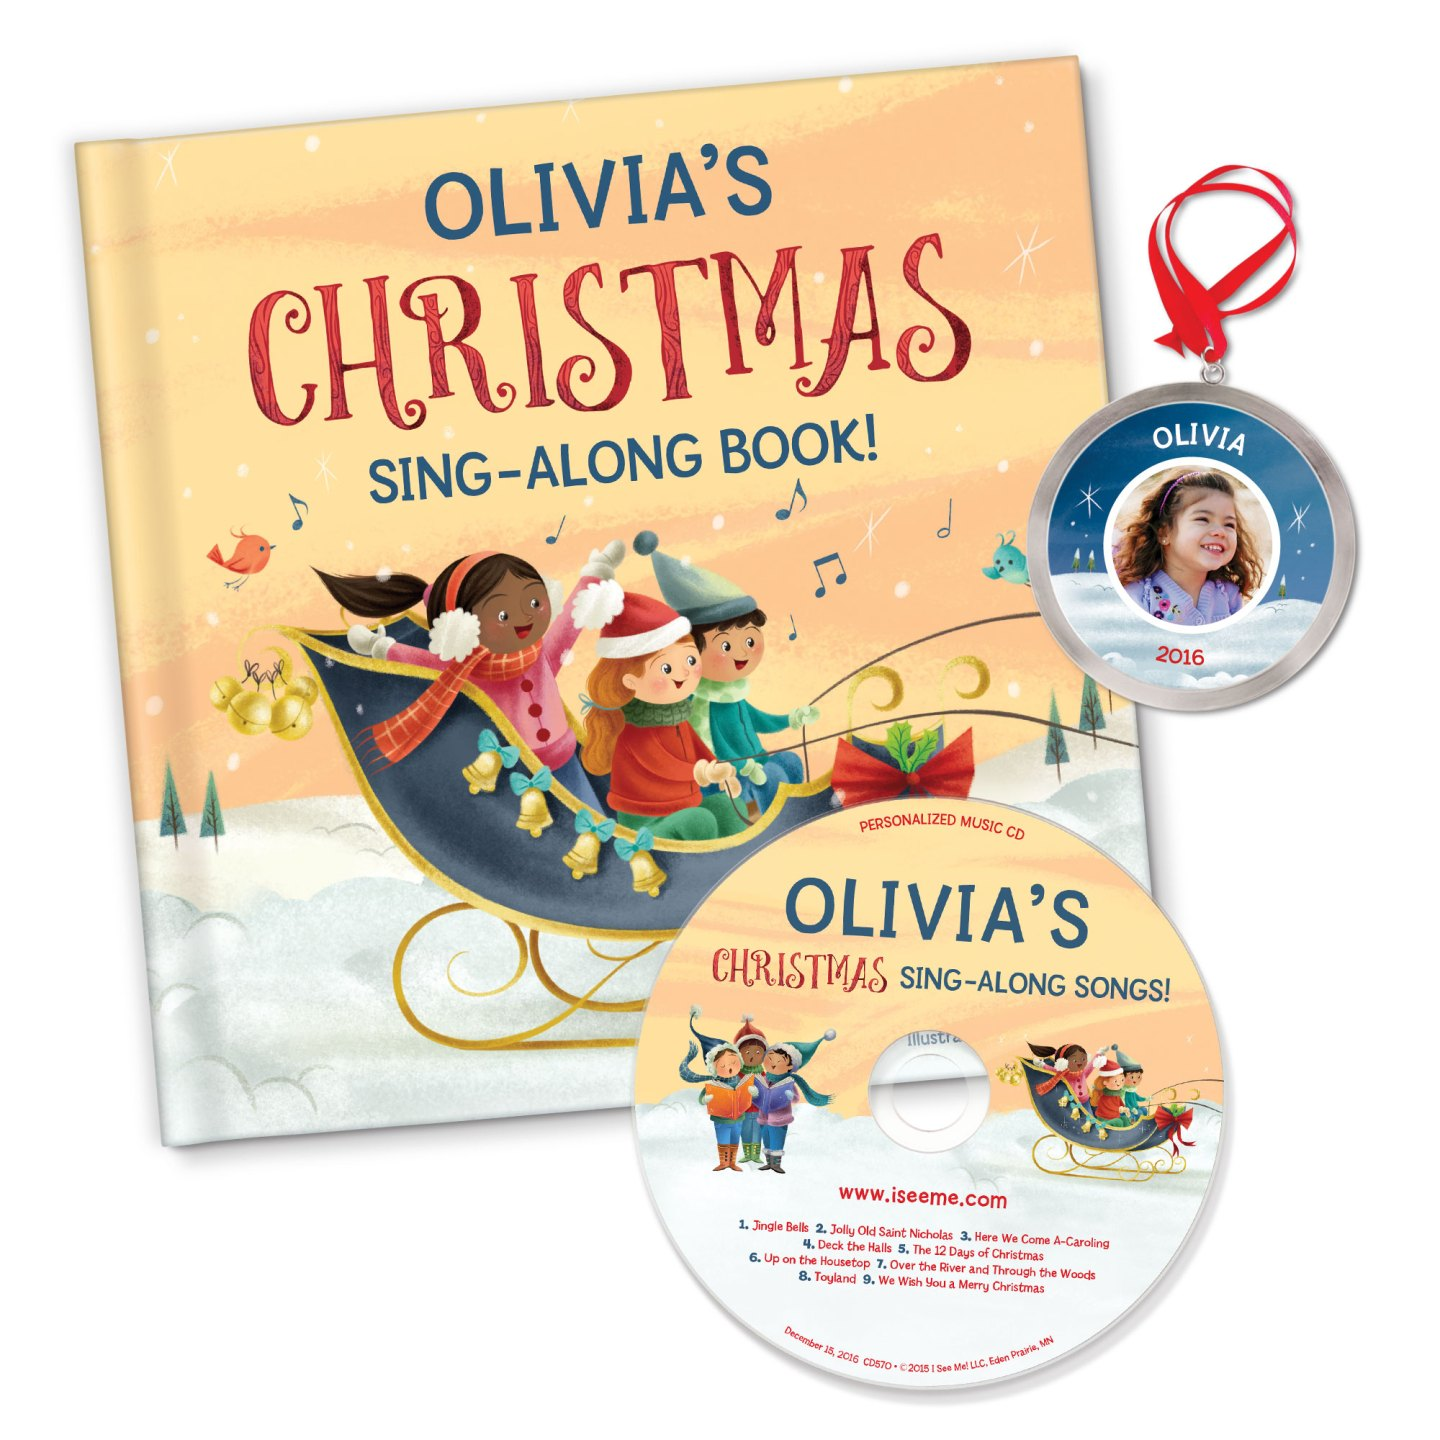 My Christmas Sing-A-Long Book & Songs With Personalised Ornament | Personalised Christmas Gift For Kids